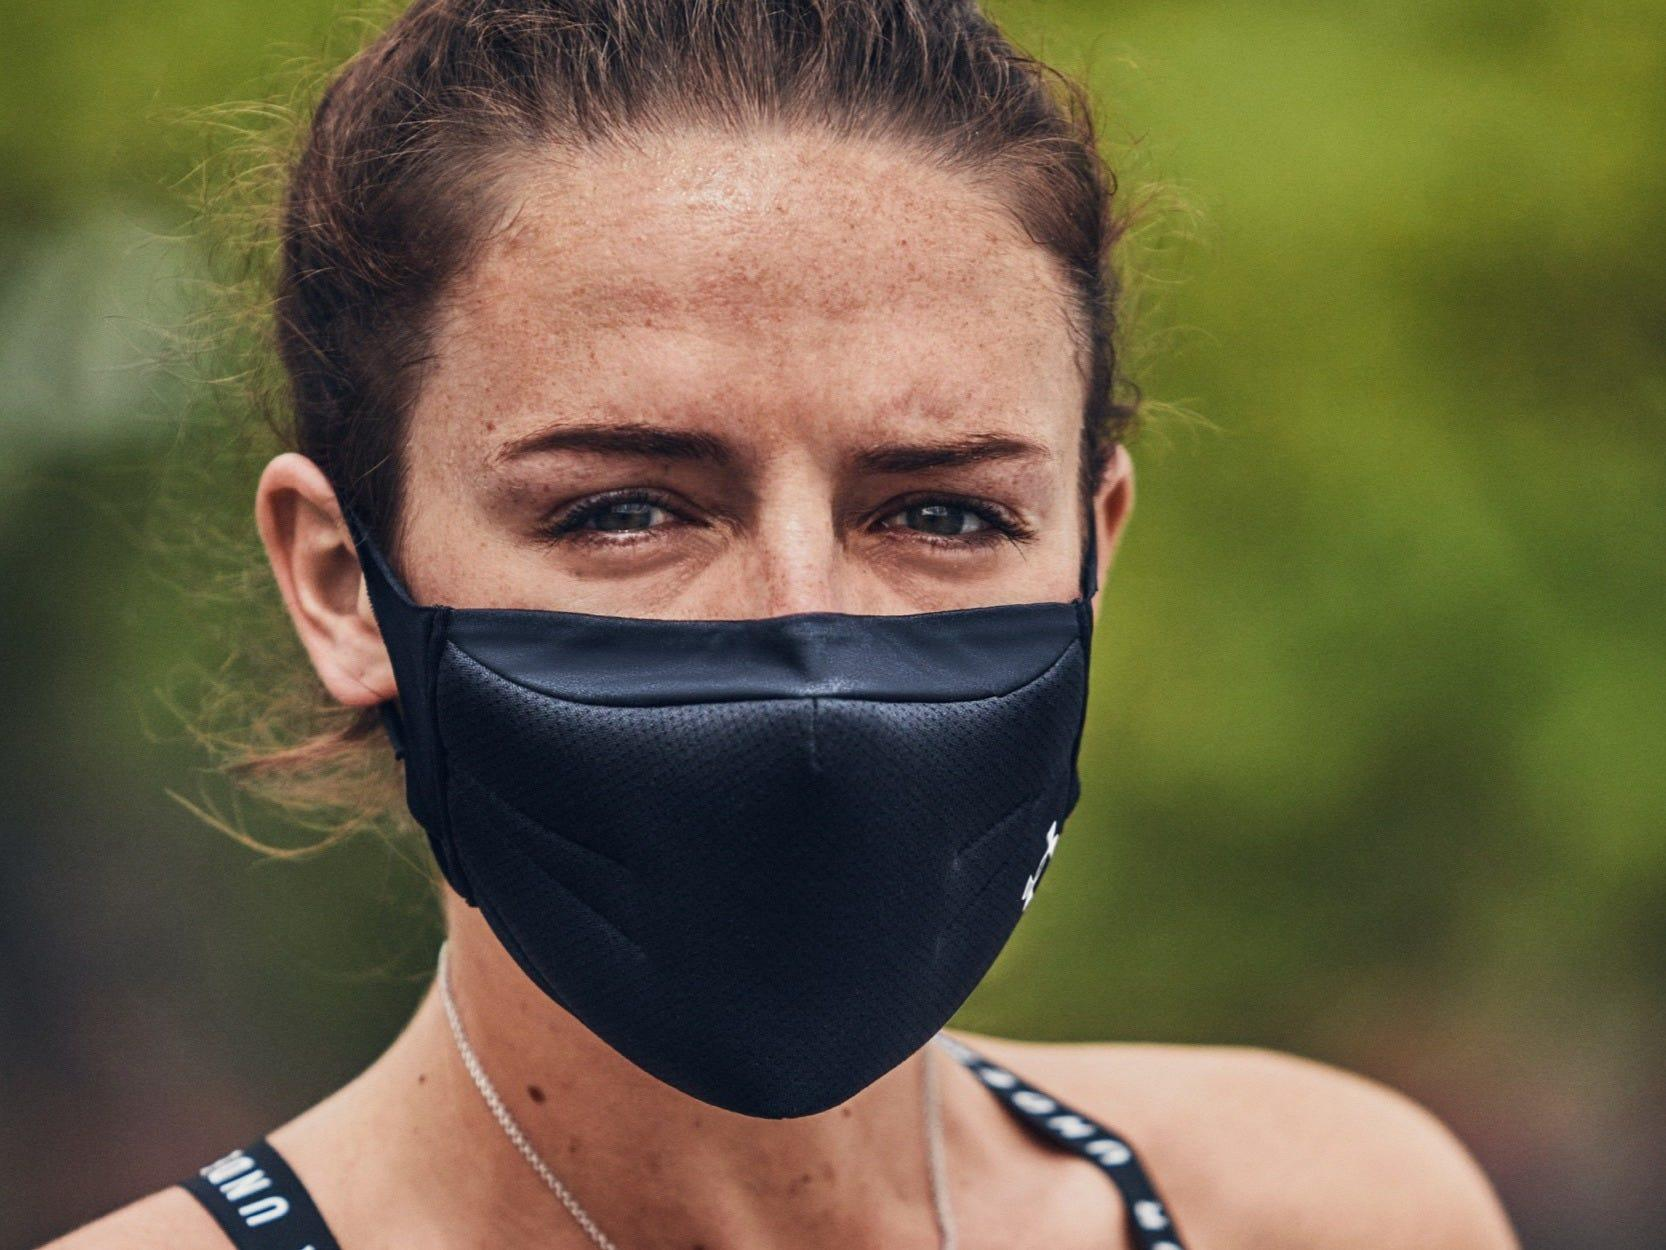 Under Armour S Sportsmask Sold Out In Less Than An Hour As People Scramble To Find Masks They Can Tolerate While Working Out Business Insider India